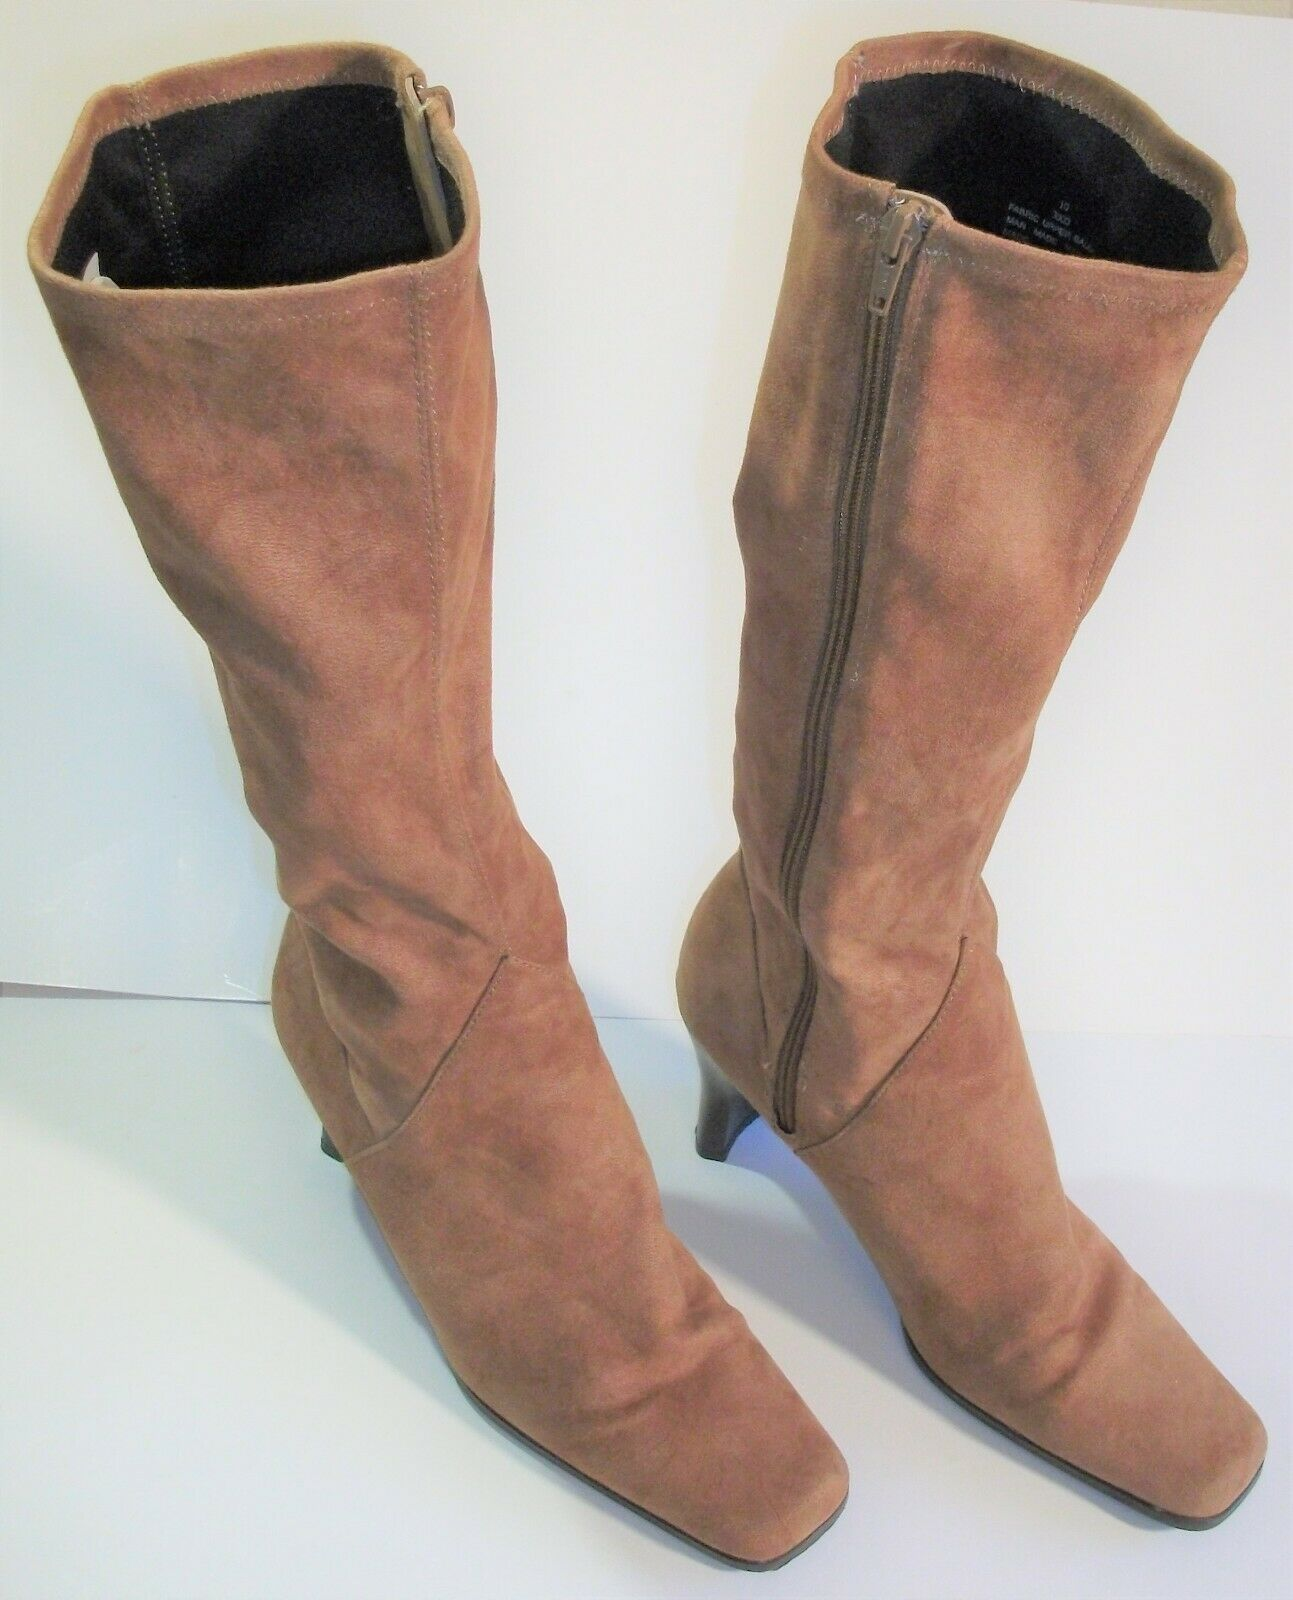 Women's Cato Tan High Heeled Boots - Over the calf - 3 inch heel - Size 10